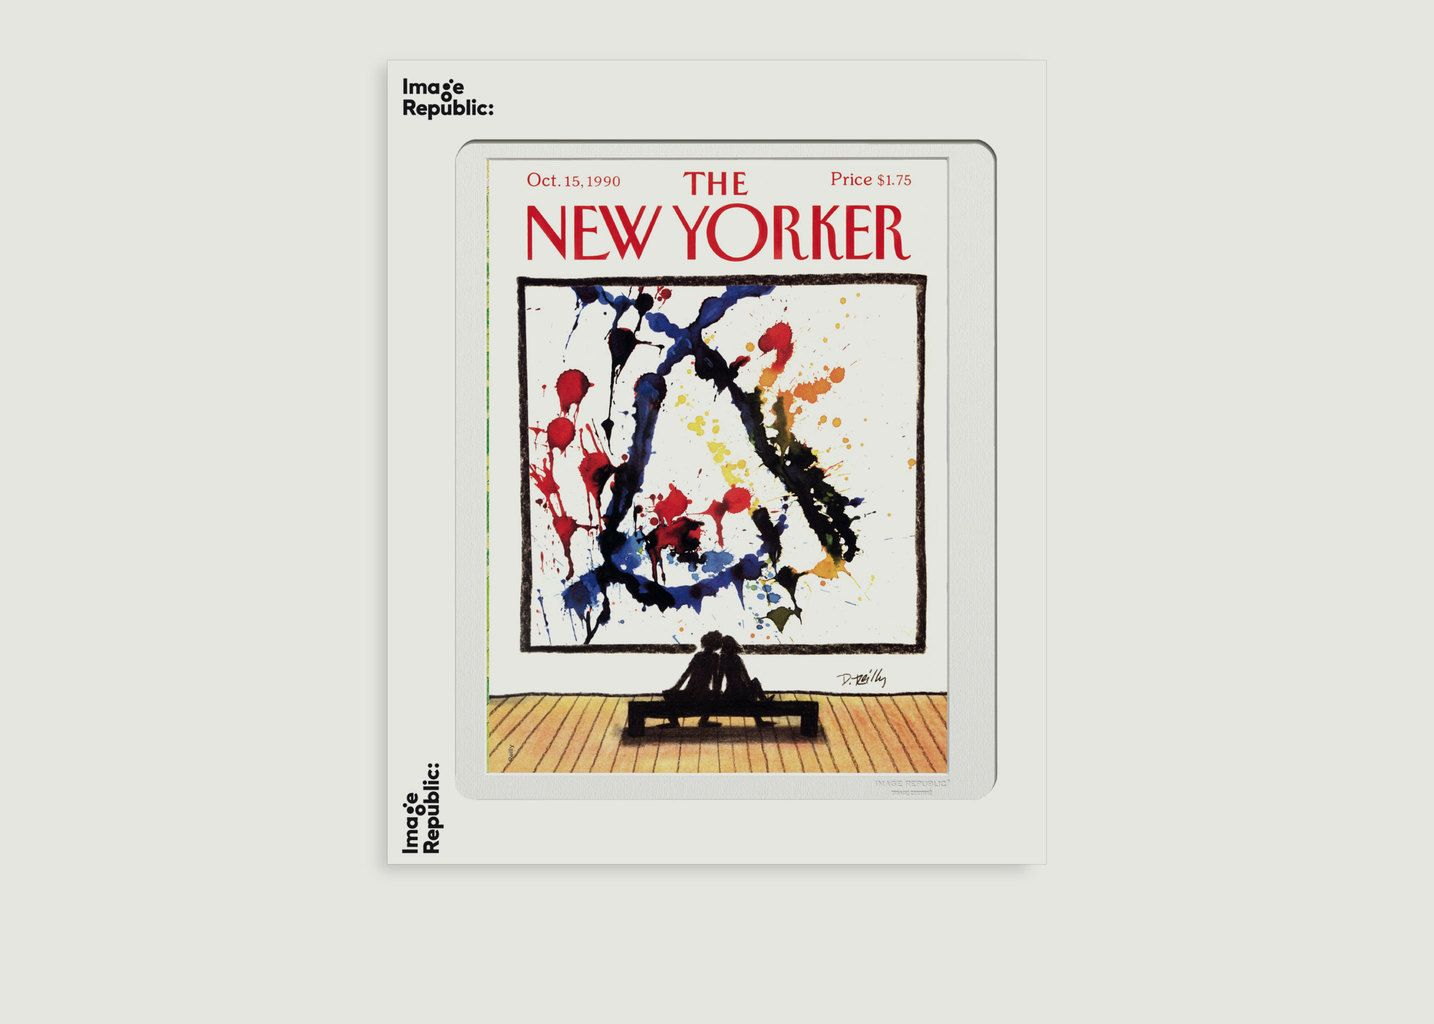 Affiche The New Yorker 129 Reilly World Changers - Image Republic